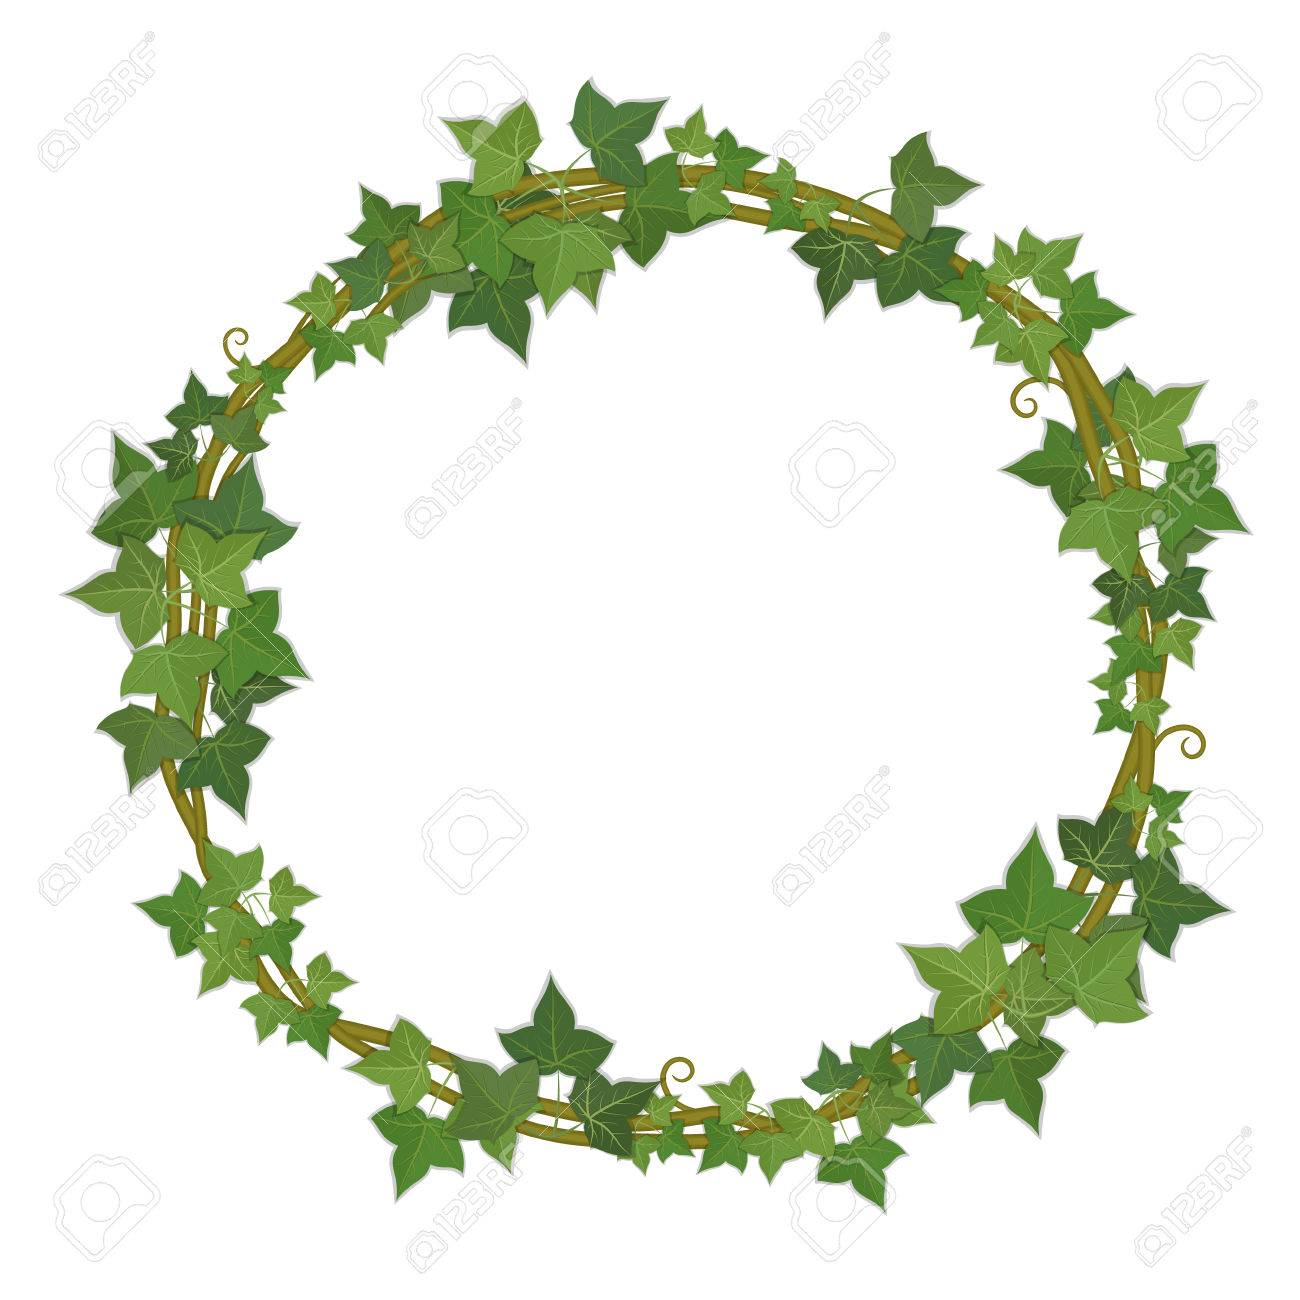 Round frame with decorative branch vector illustration stock - Round Decorative Frame Of Ivy Branches Stock Vector 37390248